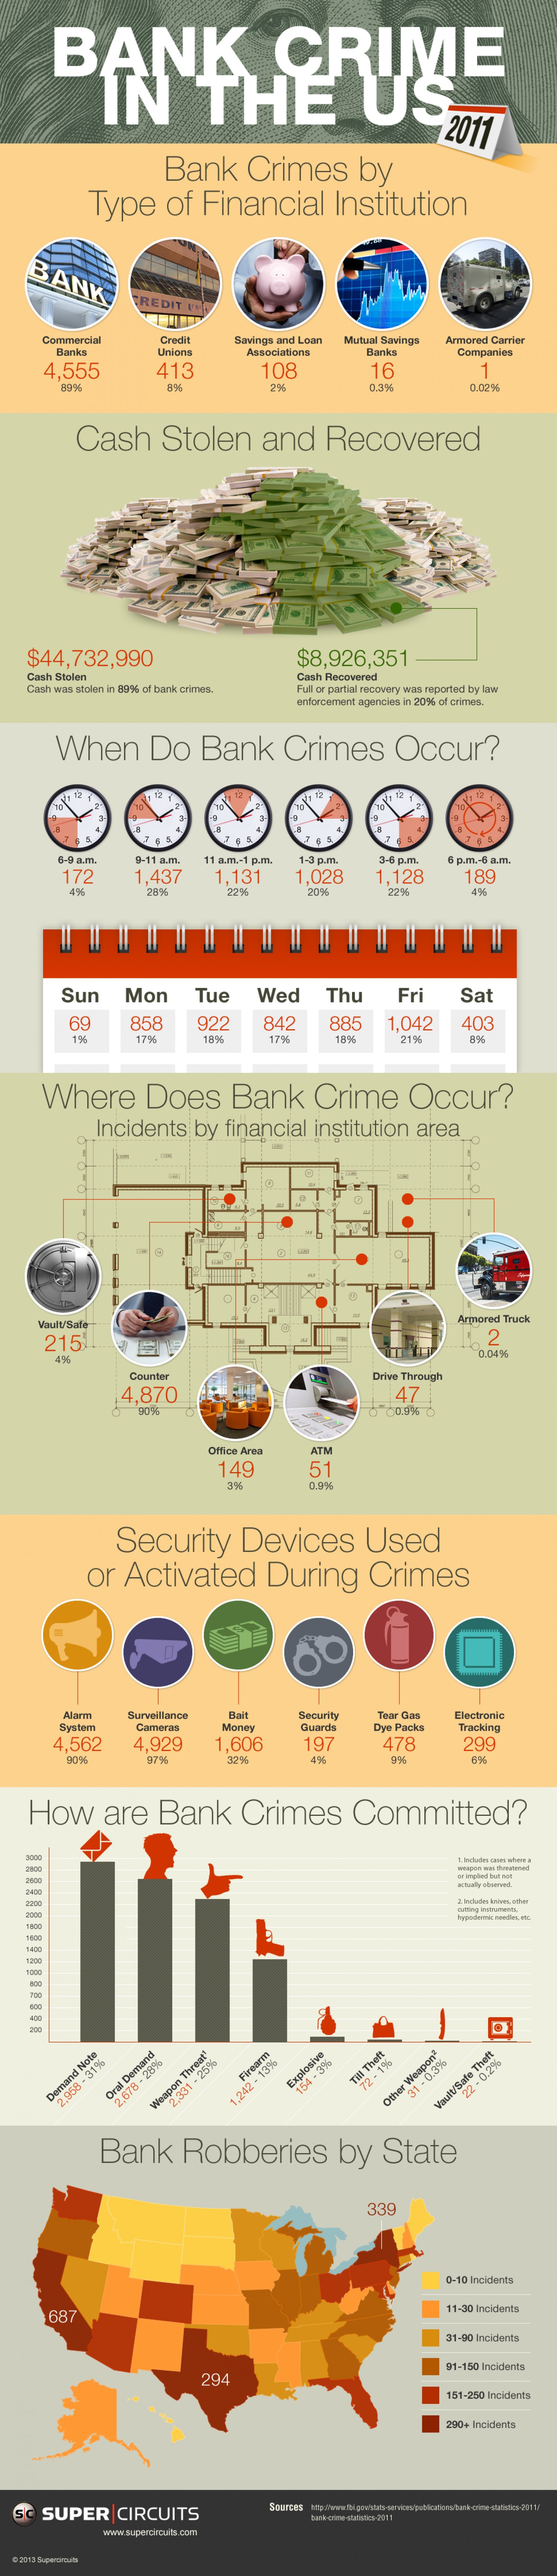 Bank crime in the US 2011